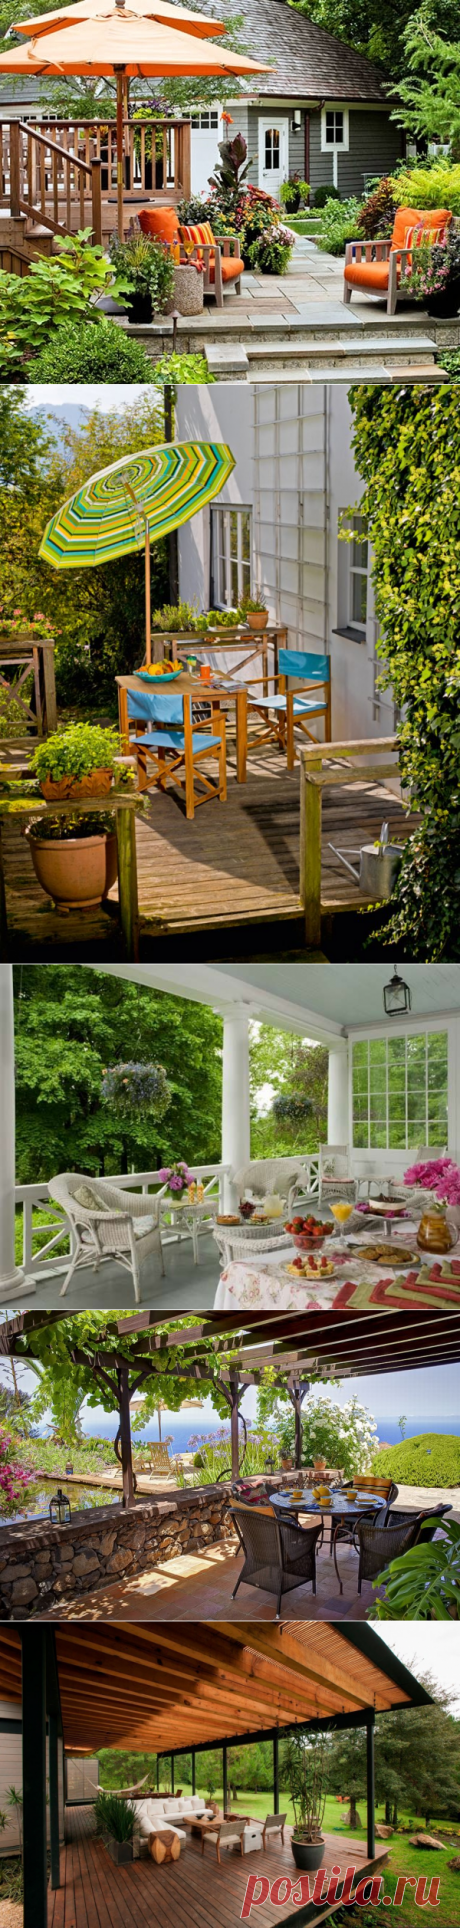 Terrace and verandah for the house – in search of ideas for inspiration